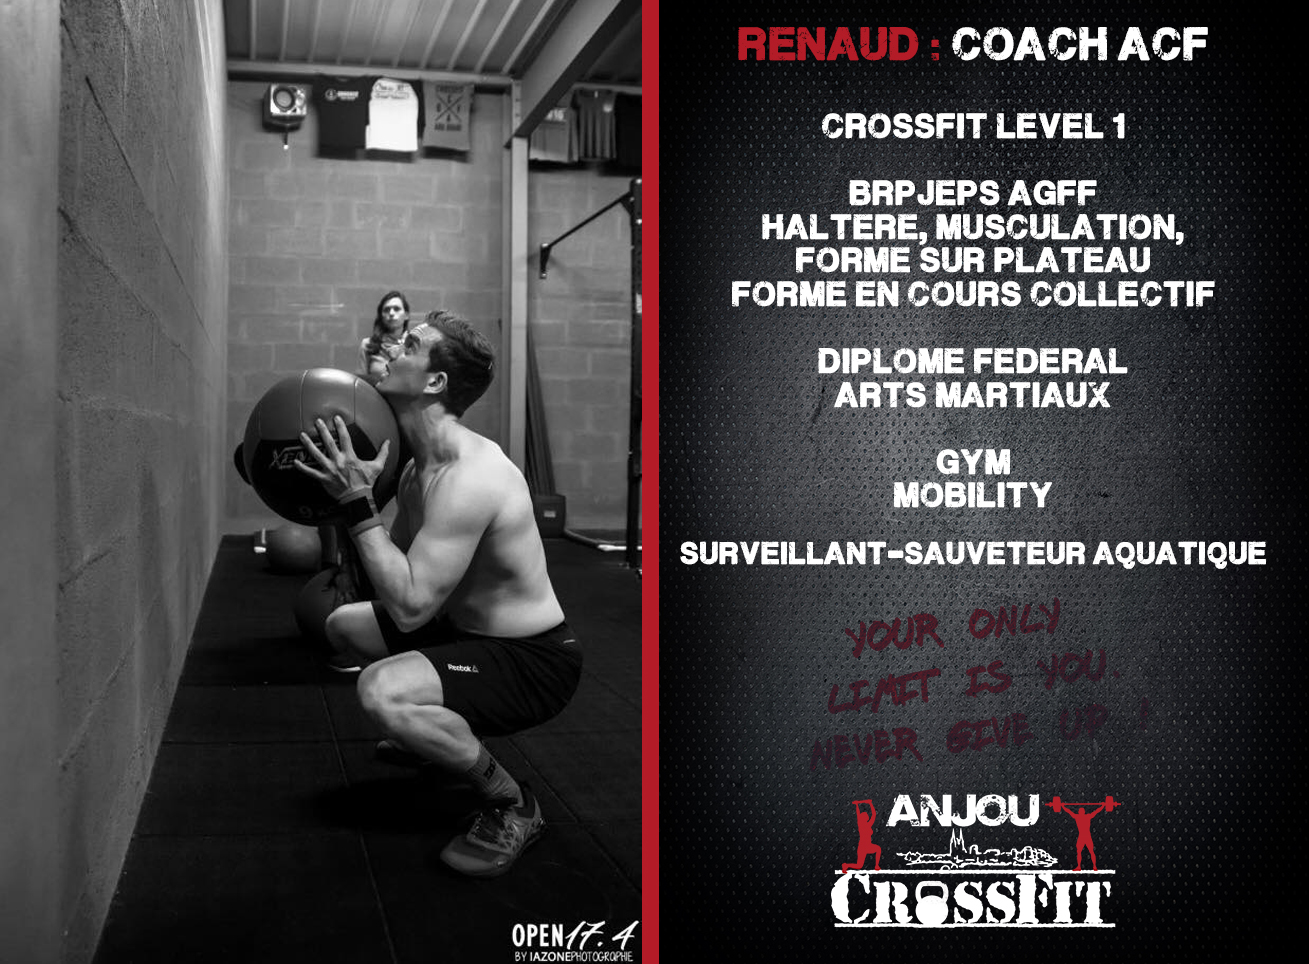 anjou-crossfit-coach-acf-renaud-husson 2